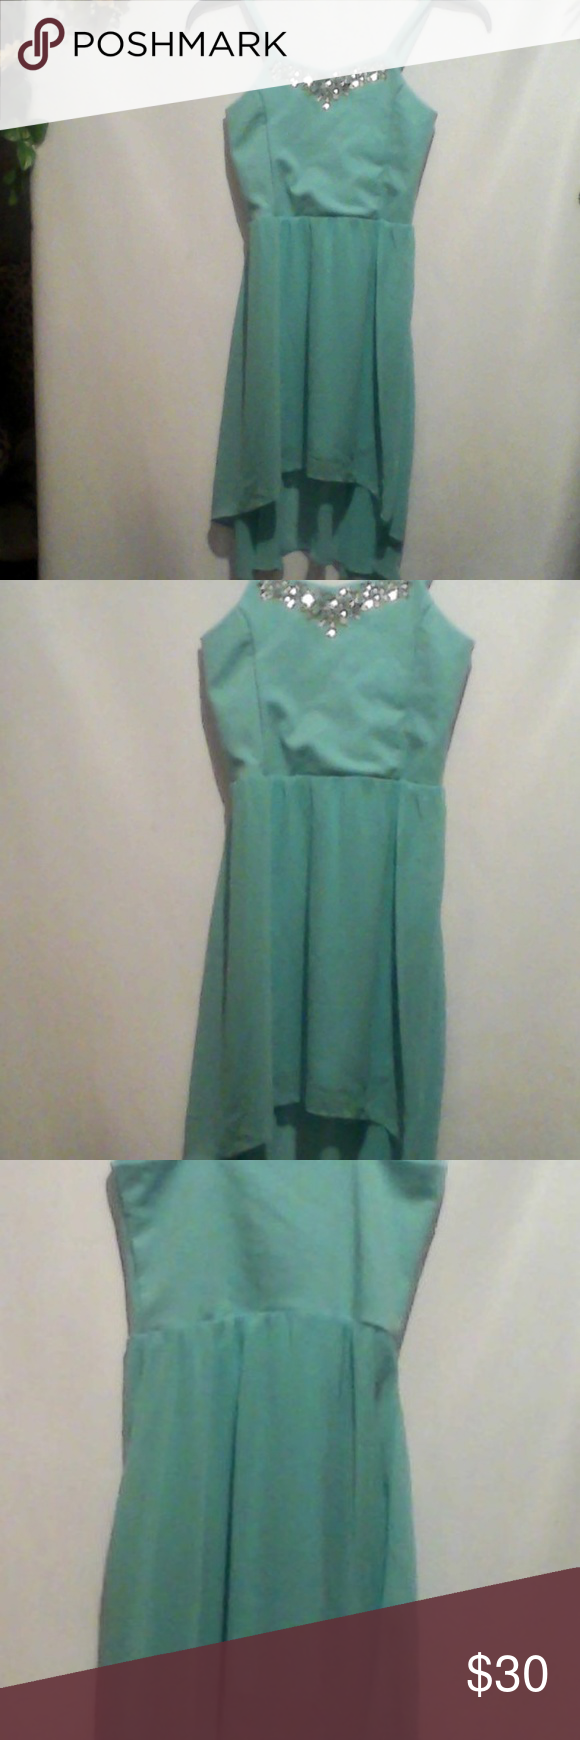 Sally Miller Mint green high-low dress. Sally Miller Mint green high-low dress. Rhinestone detail around collar. EUC. Please see photos for fabric and care info. Sally Miller Dresses Casual #sallymiller